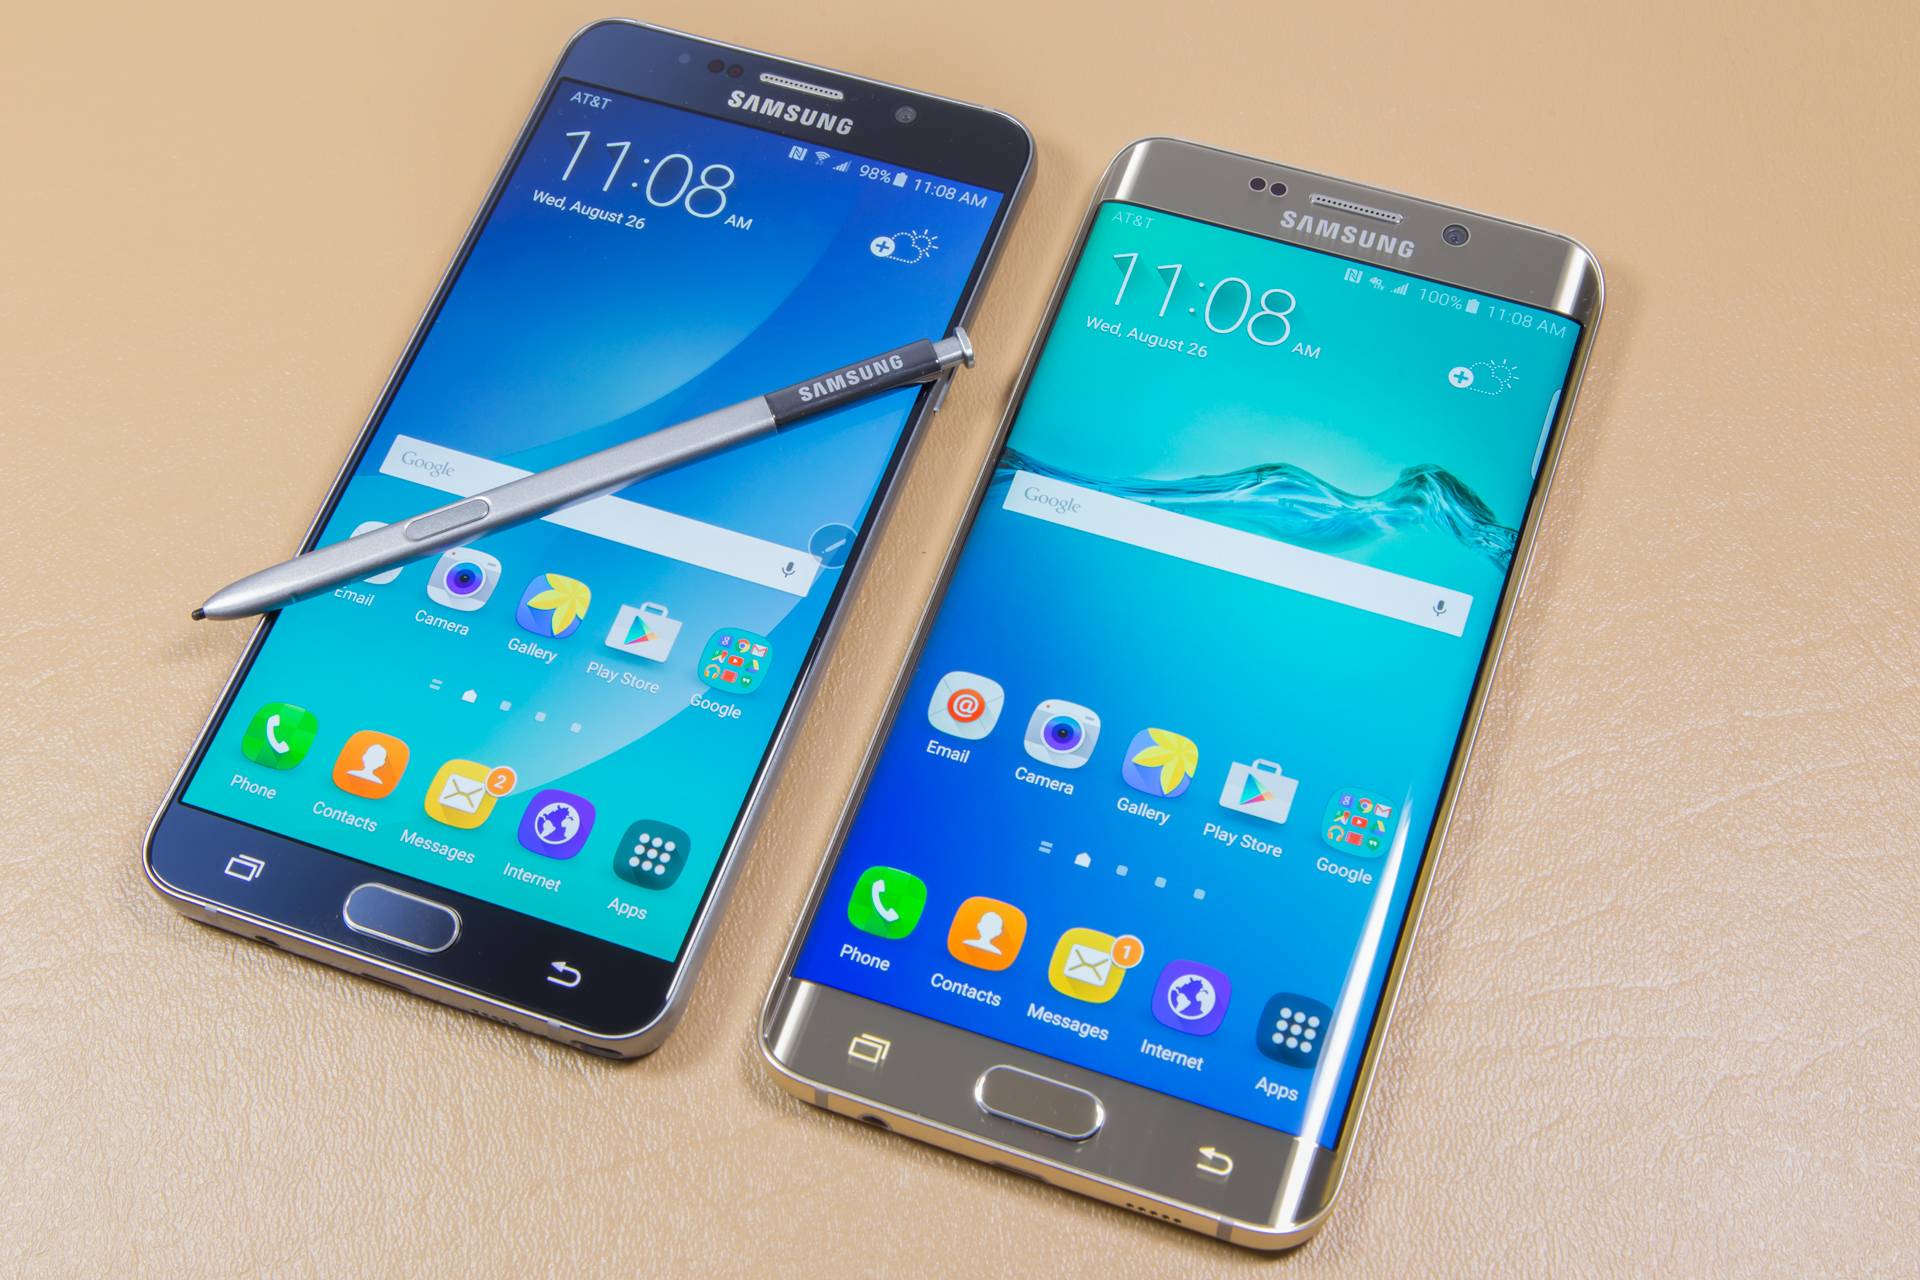 The Note 5 and S6 Edge Side-by-side Comparison